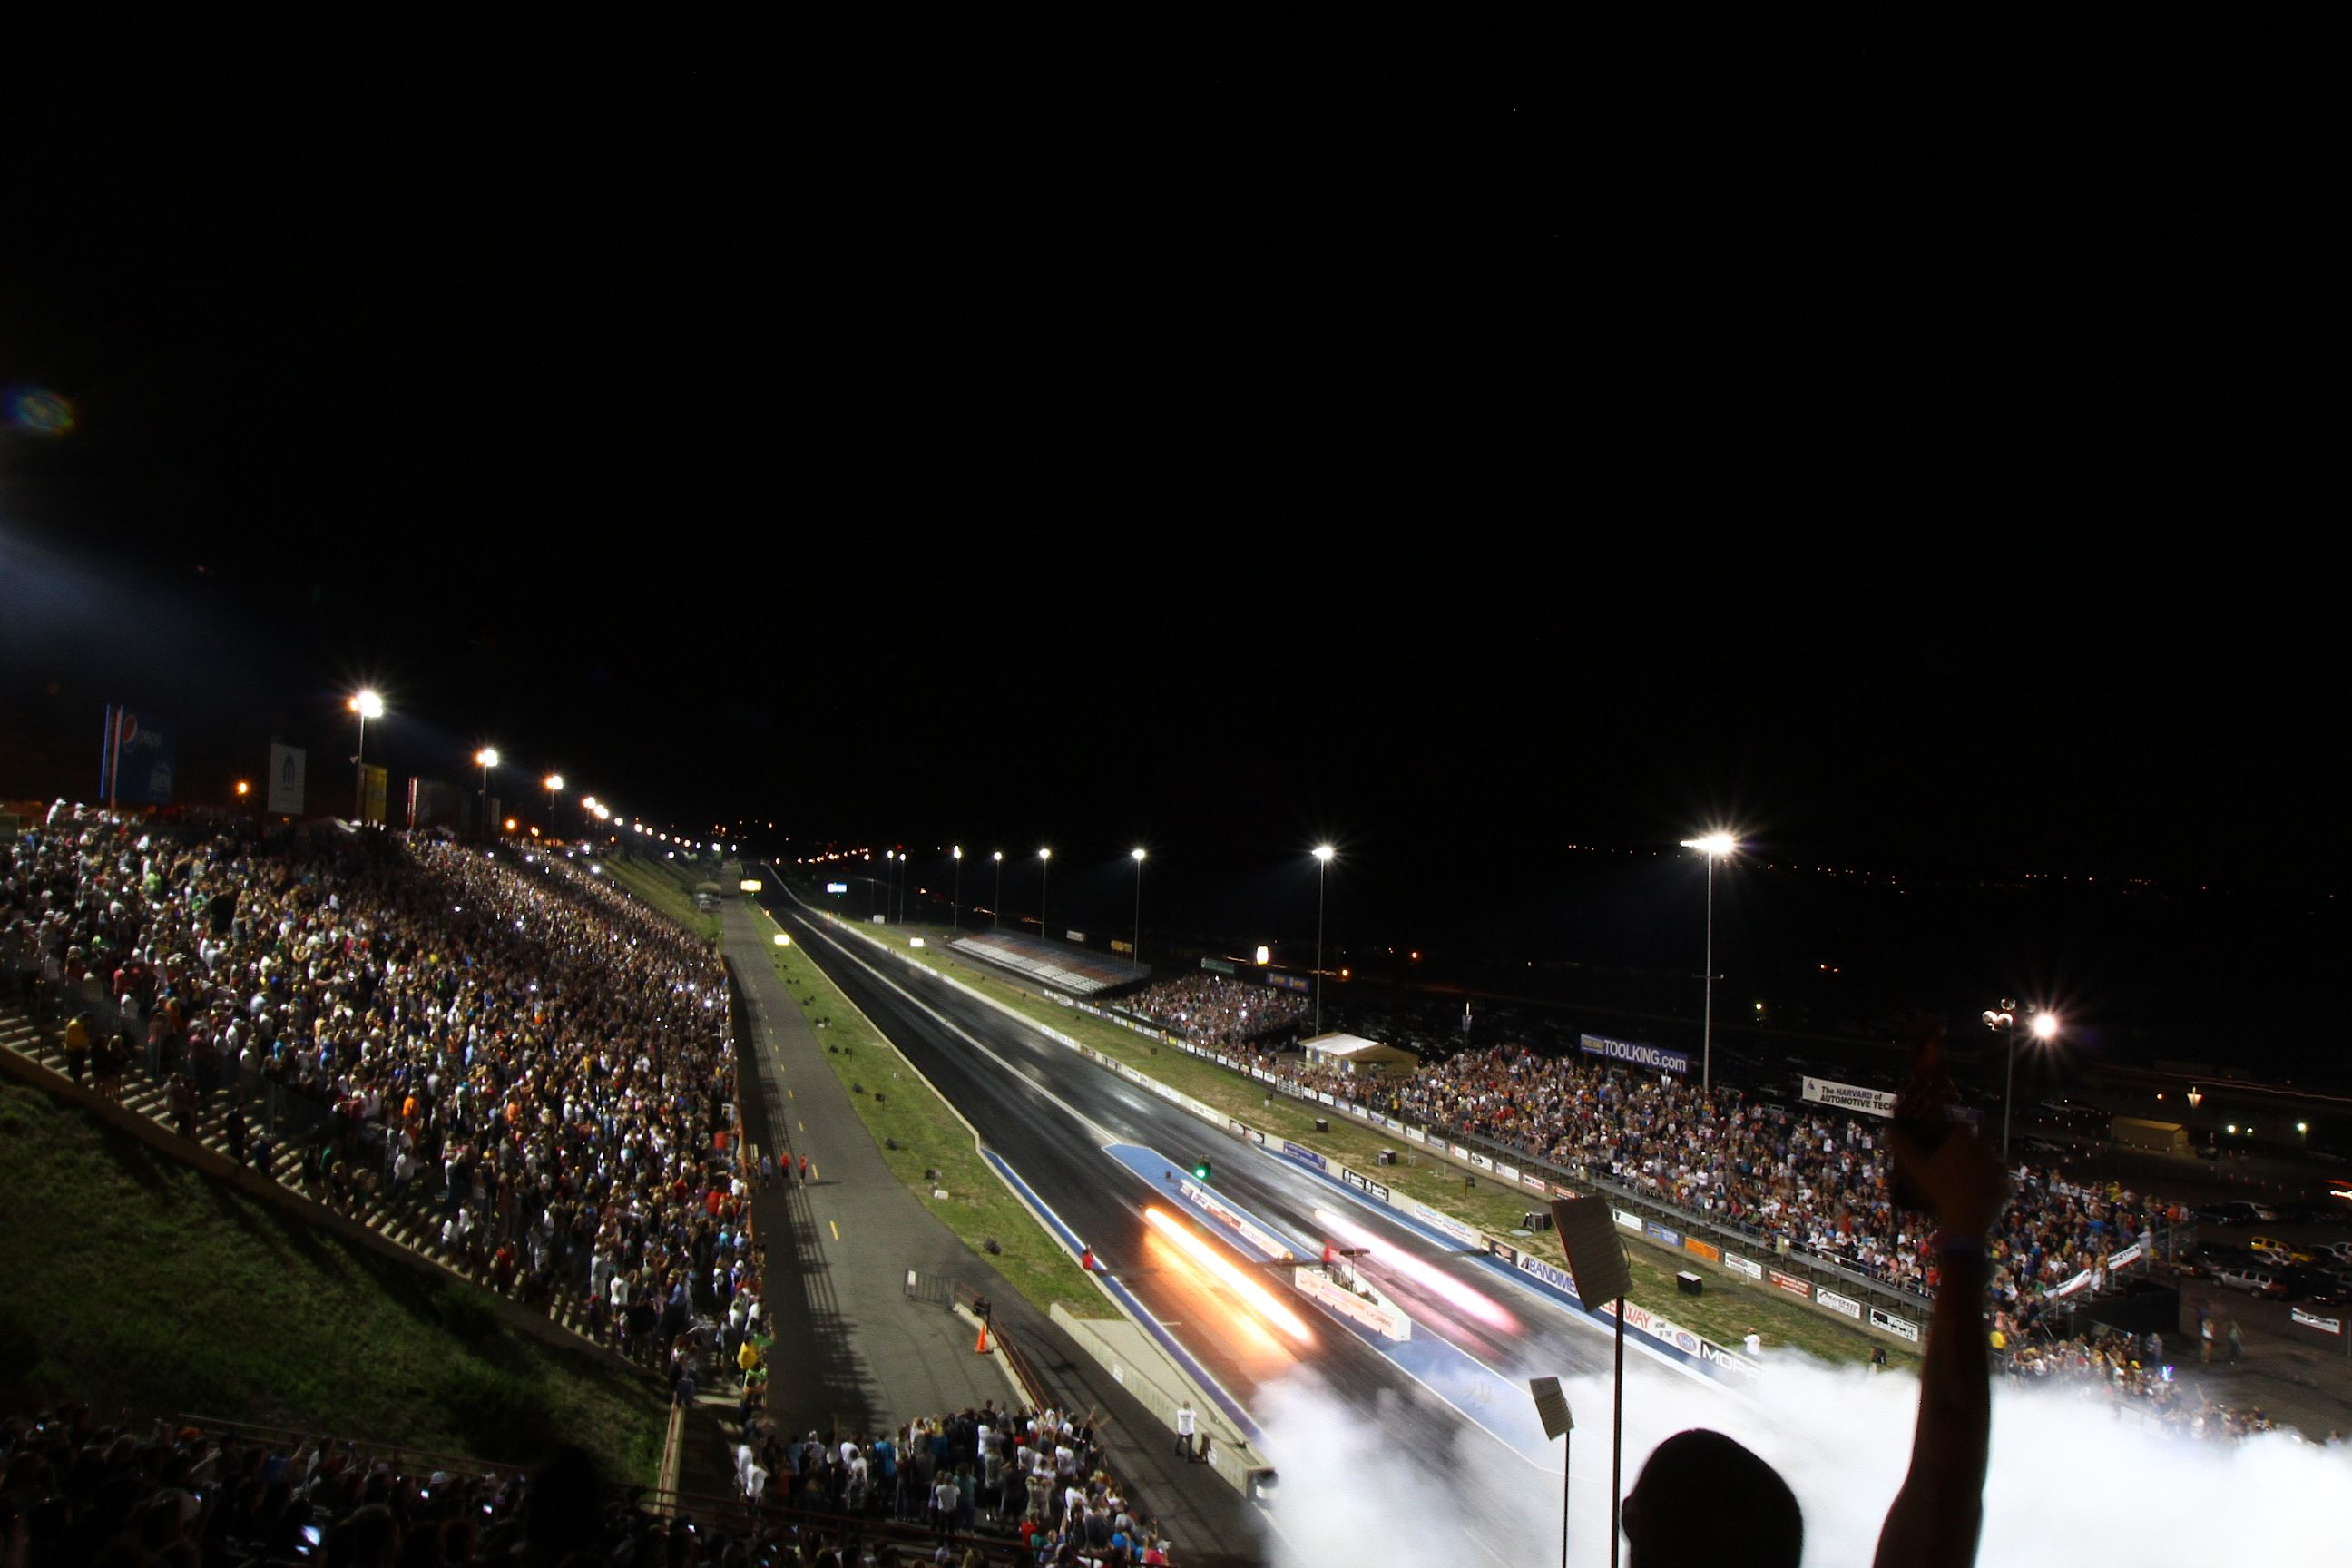 Jet Dragsters At Night At The Big O Tires Jet Car Nationals And